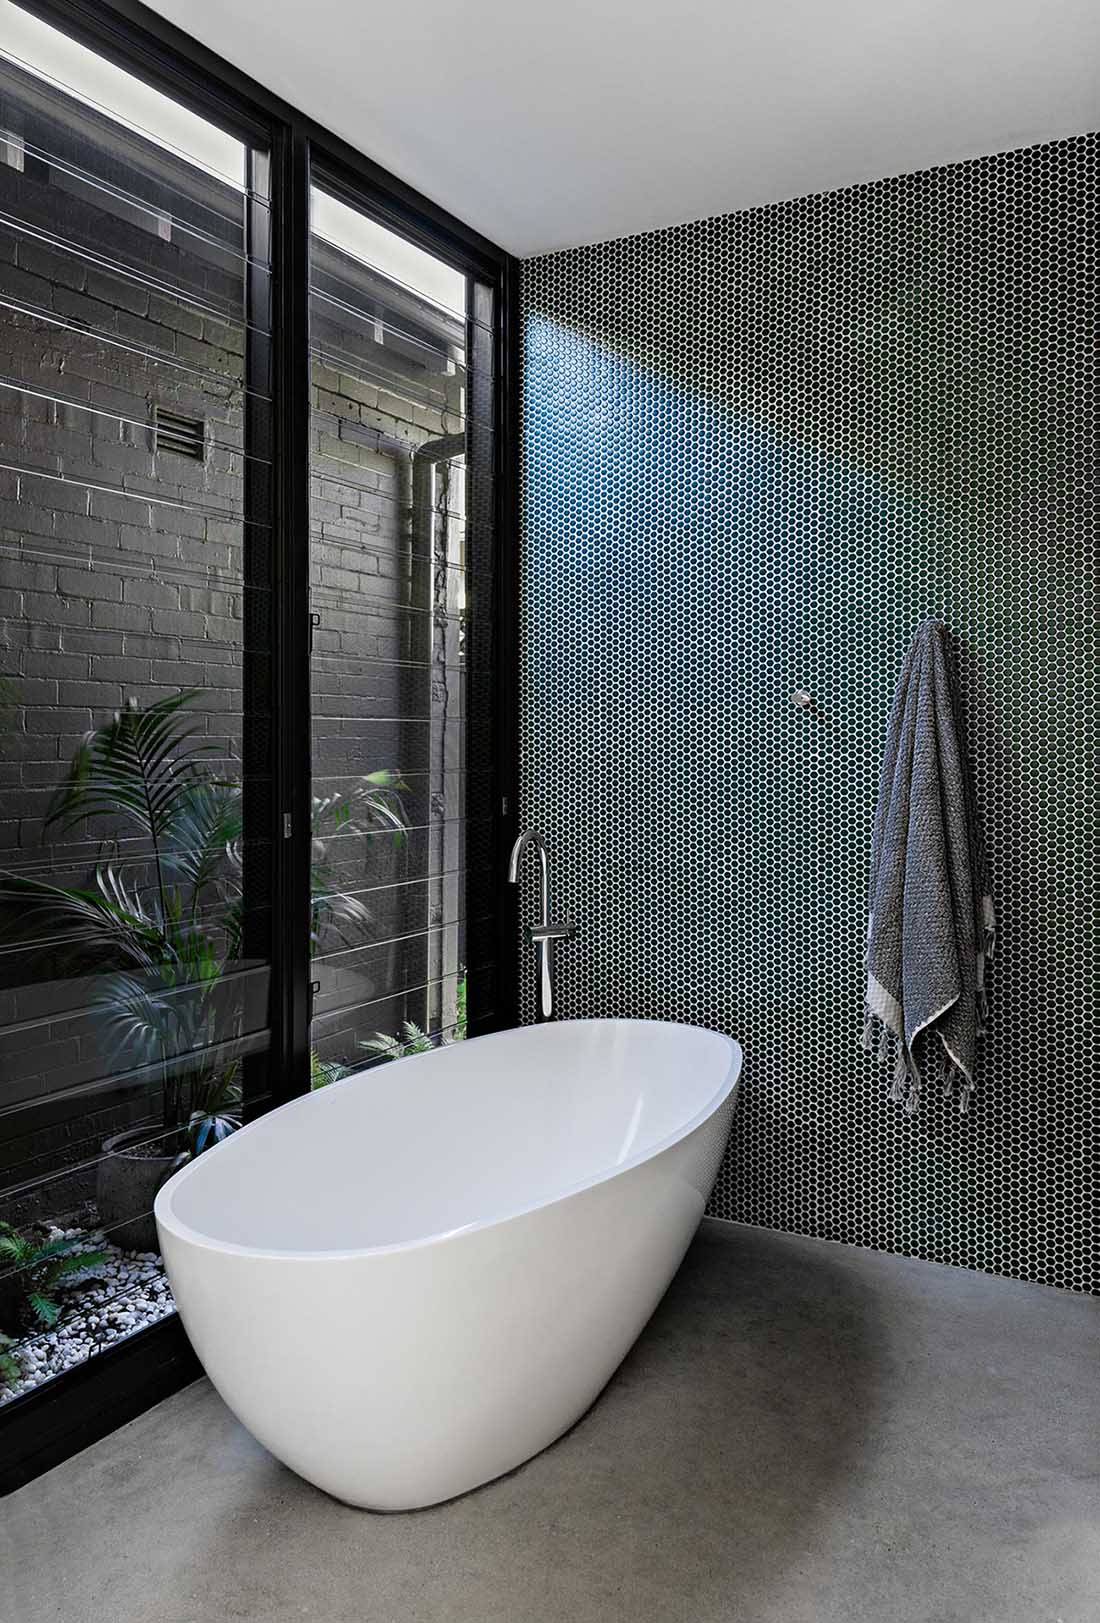 A modern bathroom with a green penny tile accent wall, freestanding bathtub, louvre windows, and concrete flooring.